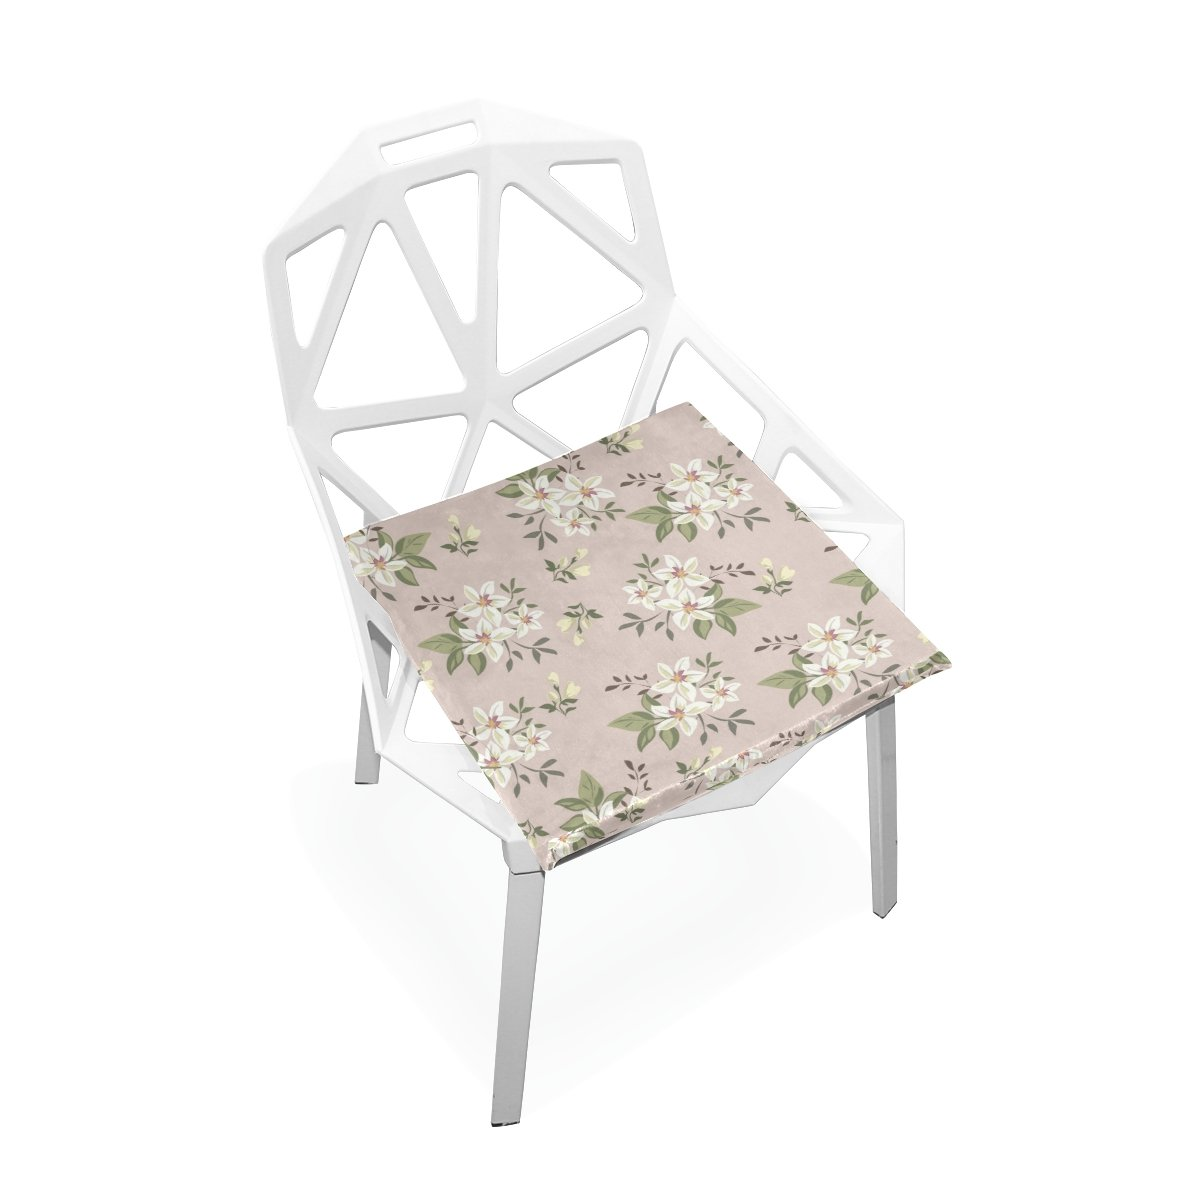 Amazon.com : PLAO Seat Cushion Pad, Vintage Flower Pattern Cushions Seat  Nonslip Chair Mats for Car Office Kitchen Chairs 16